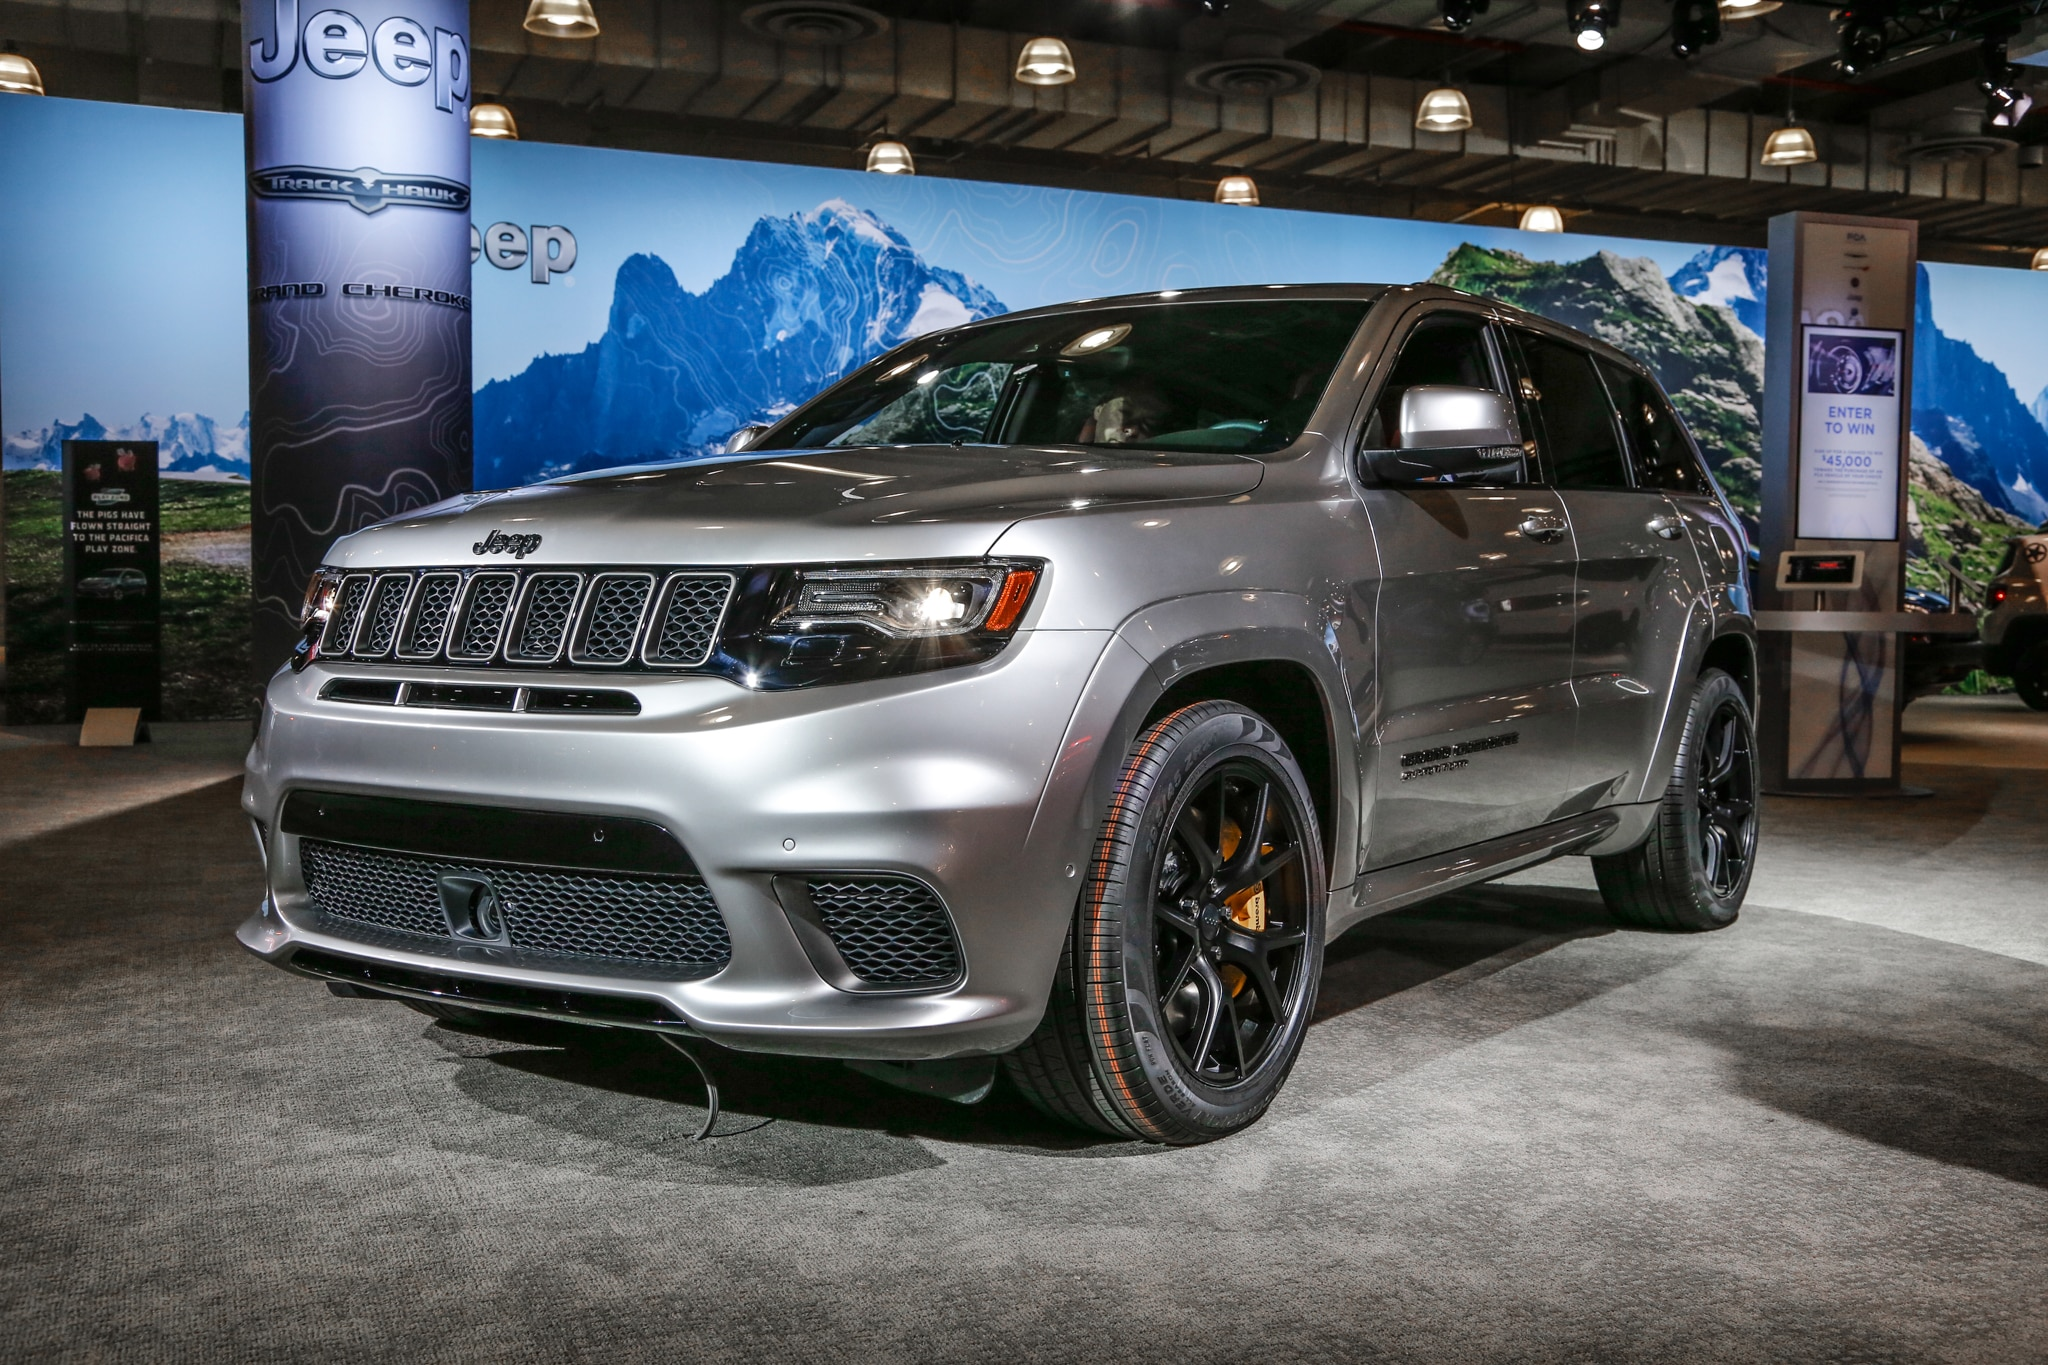 The 2018 Jeep Grand Cherokee Trackhawk Is An Suv That Runs 11 Second Quarter Miles